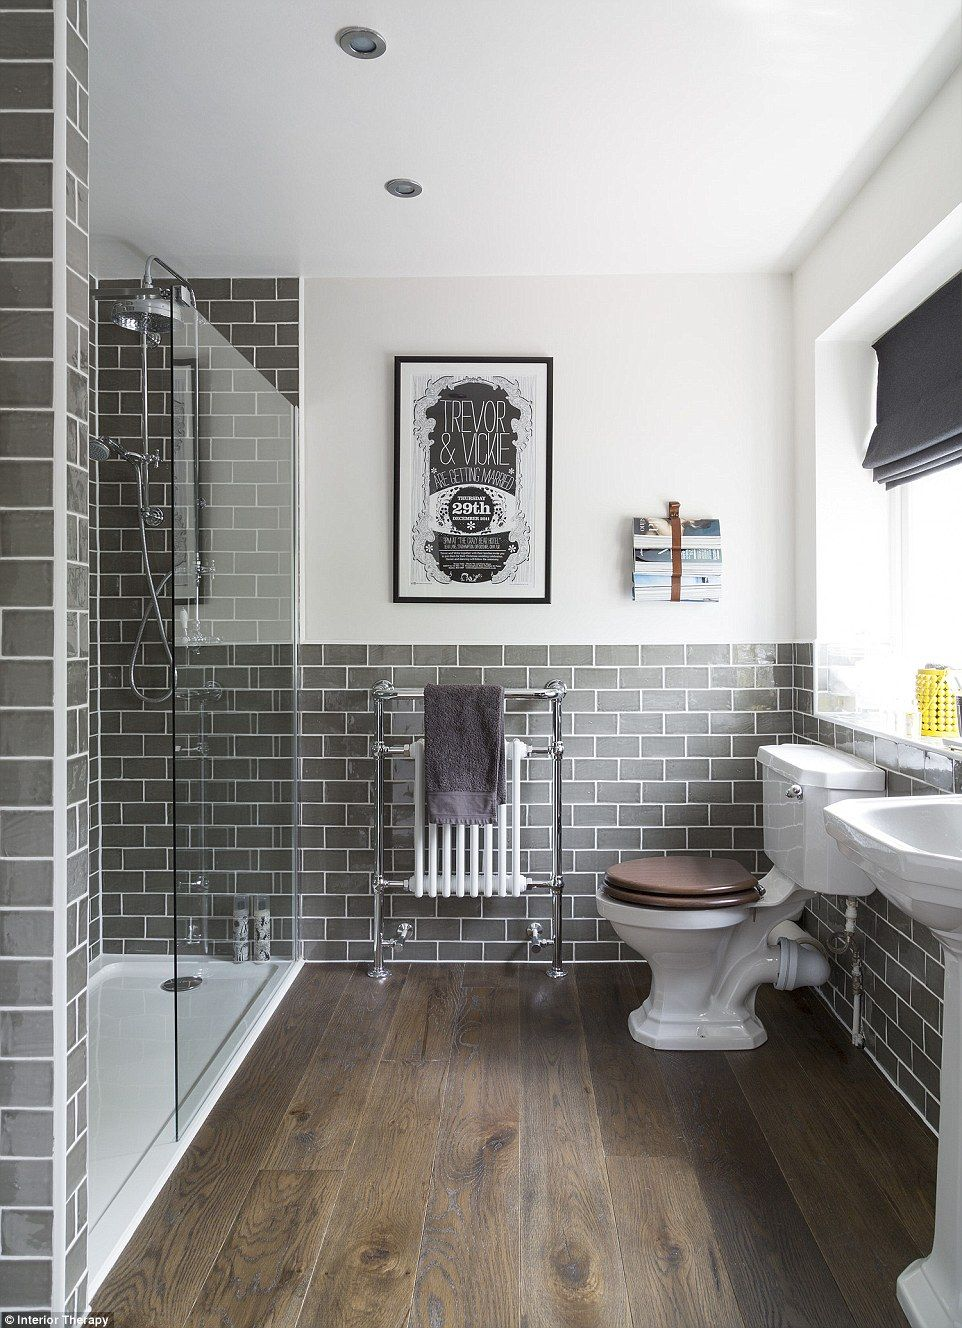 britain s most coveted interiors are revealed amazing loos and rh pinterest com